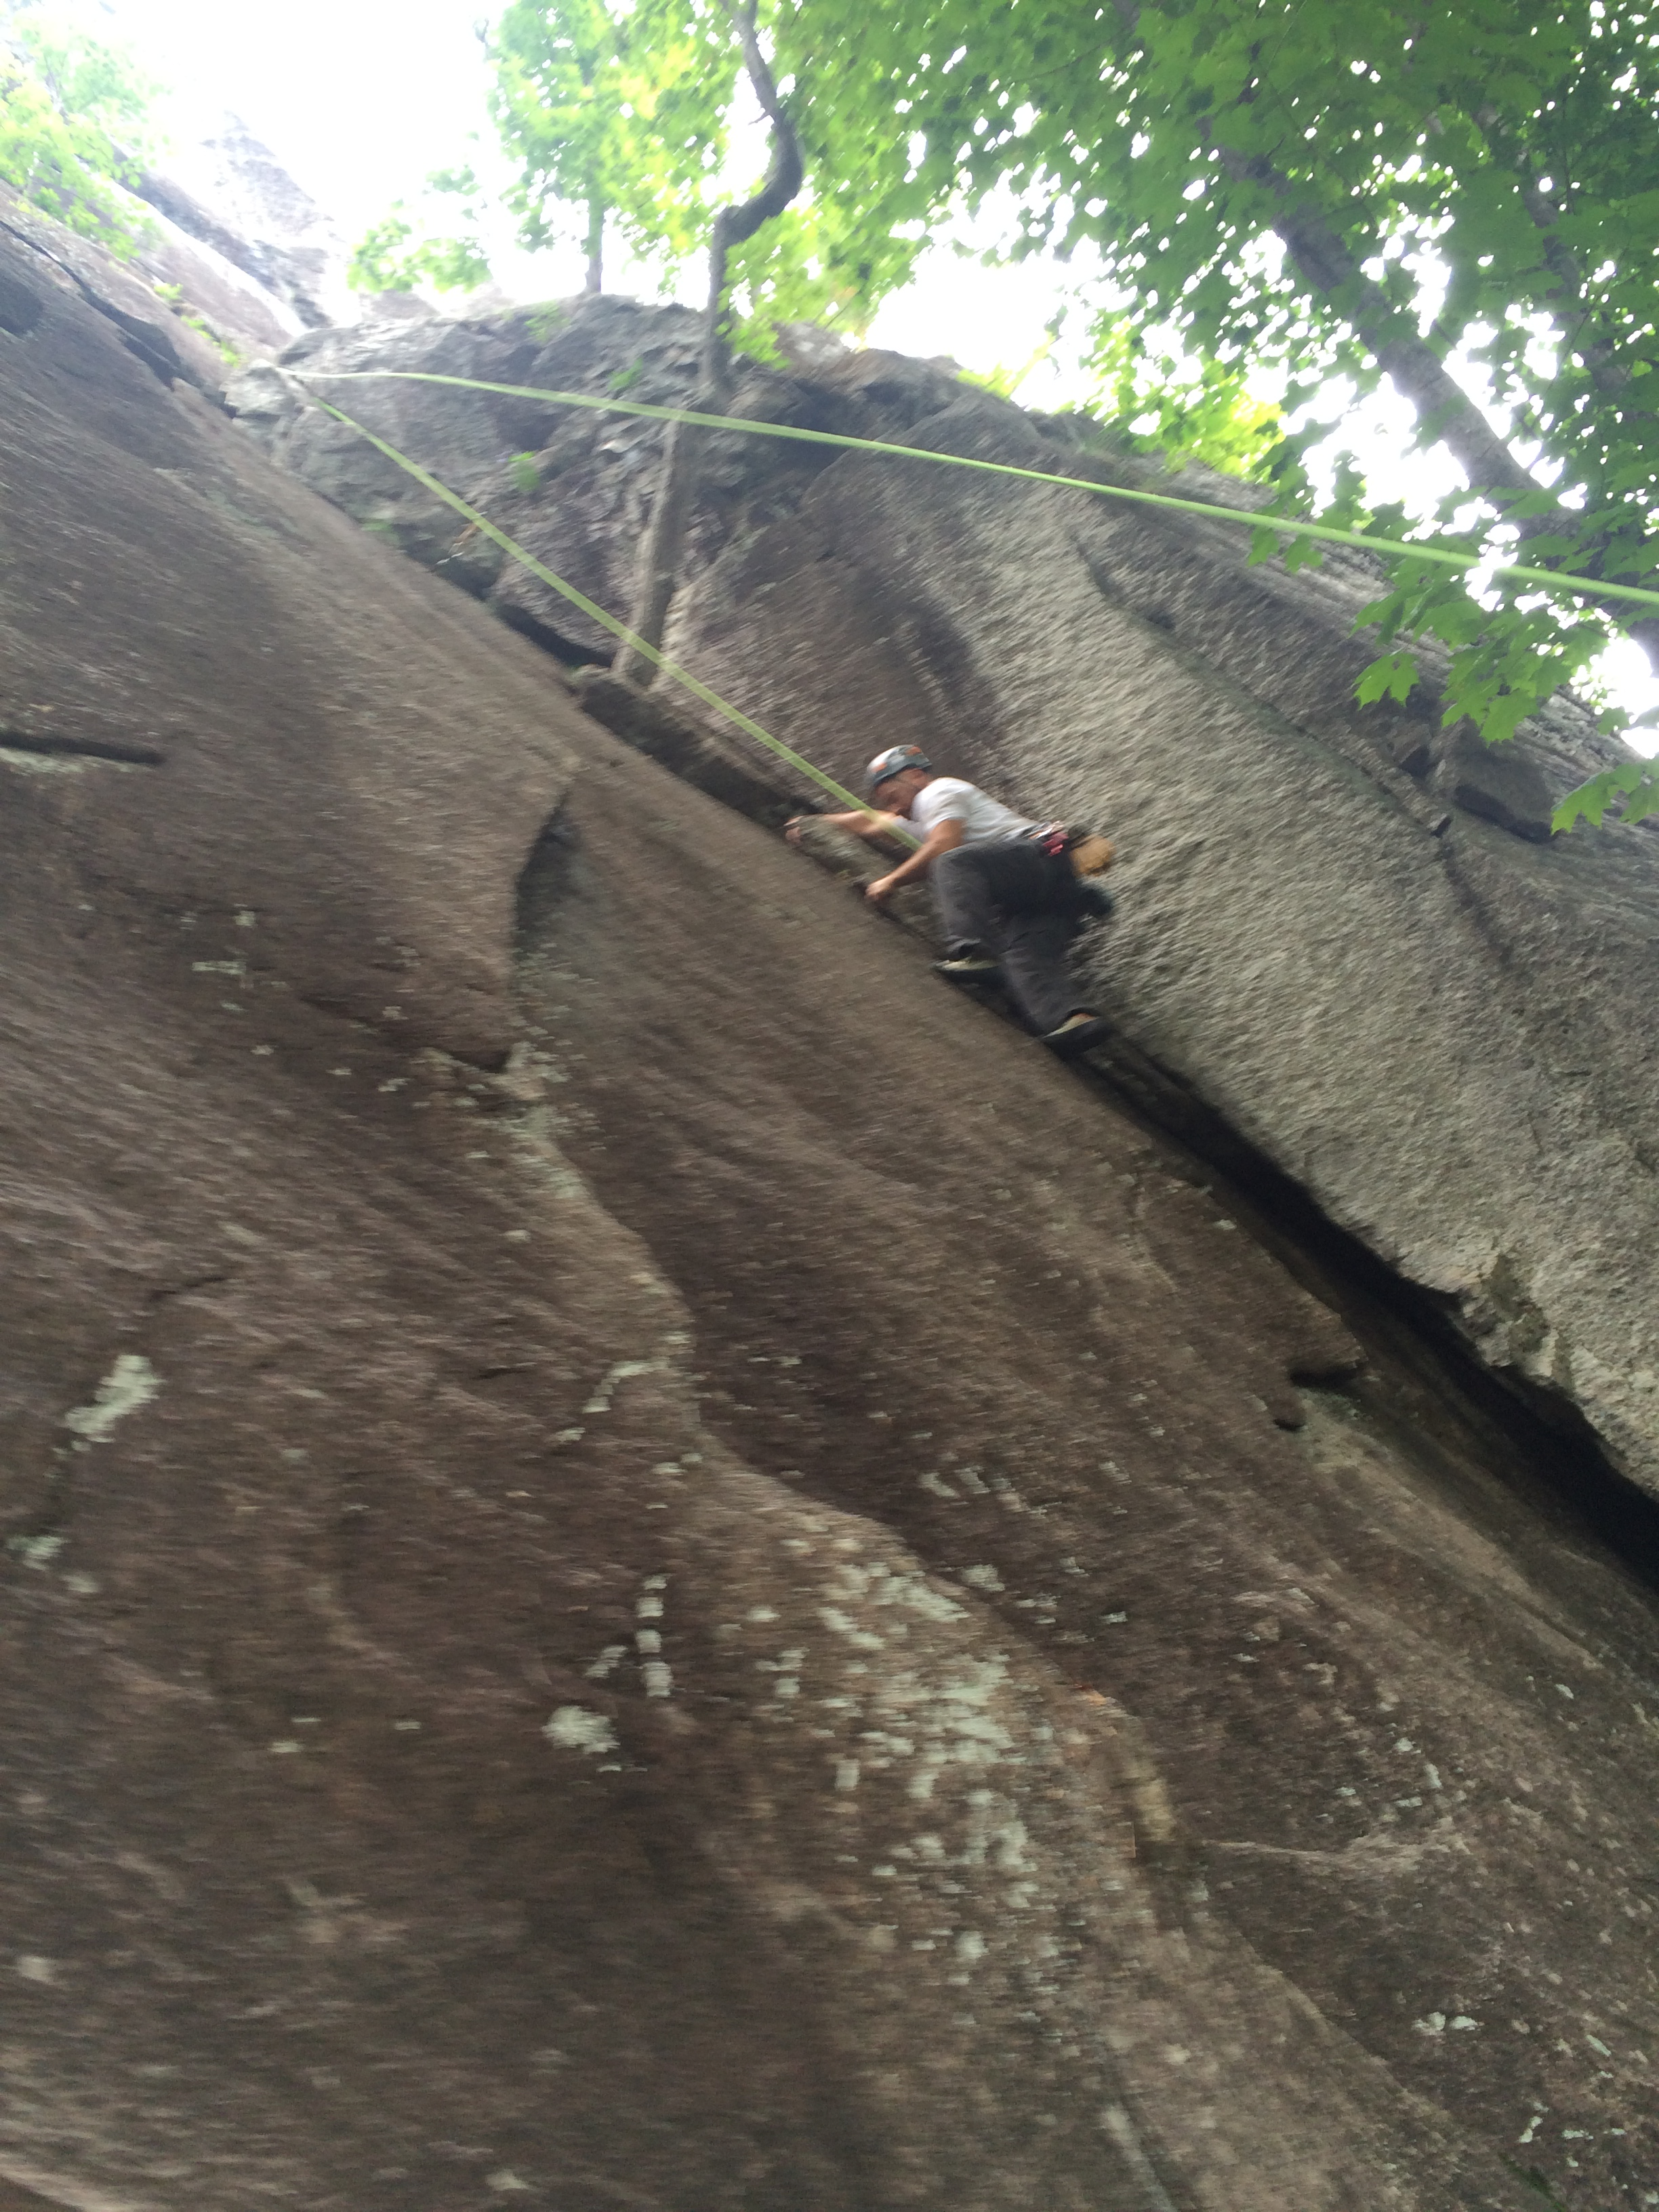 Hardy liked climbs with big hand holds... if you got guns might as well use them!